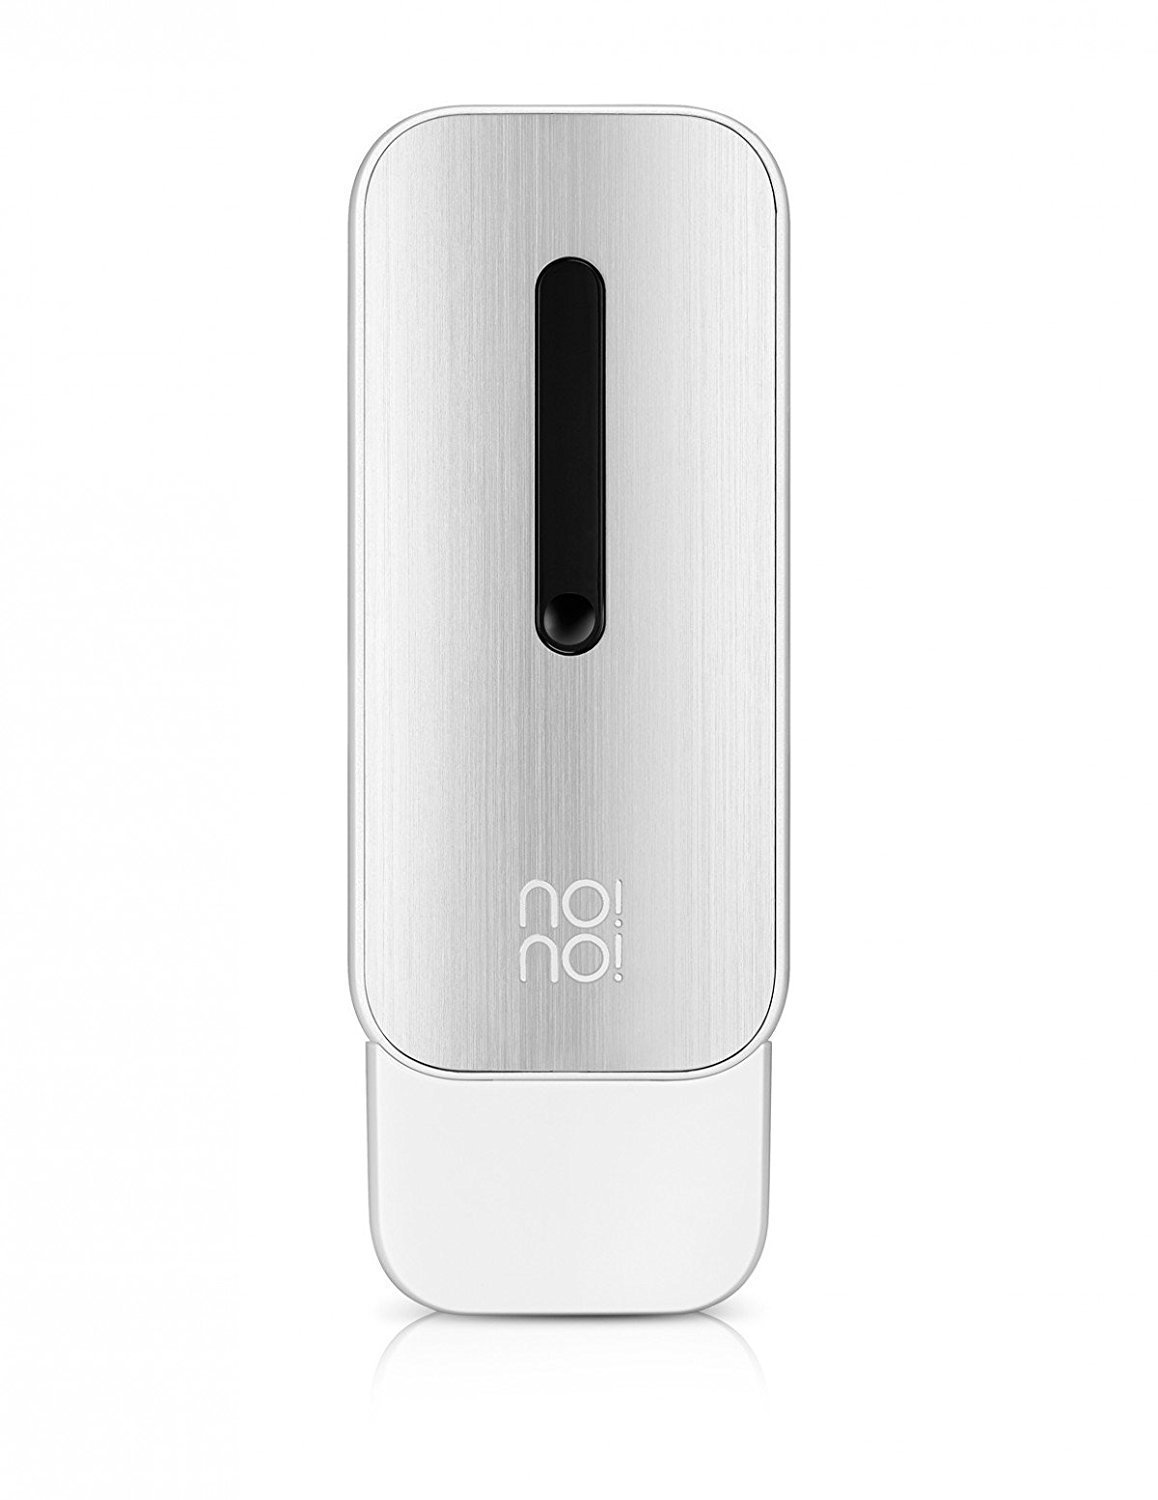 no!no! ULTRA Complete Painless Hair Removal System For Men & Women